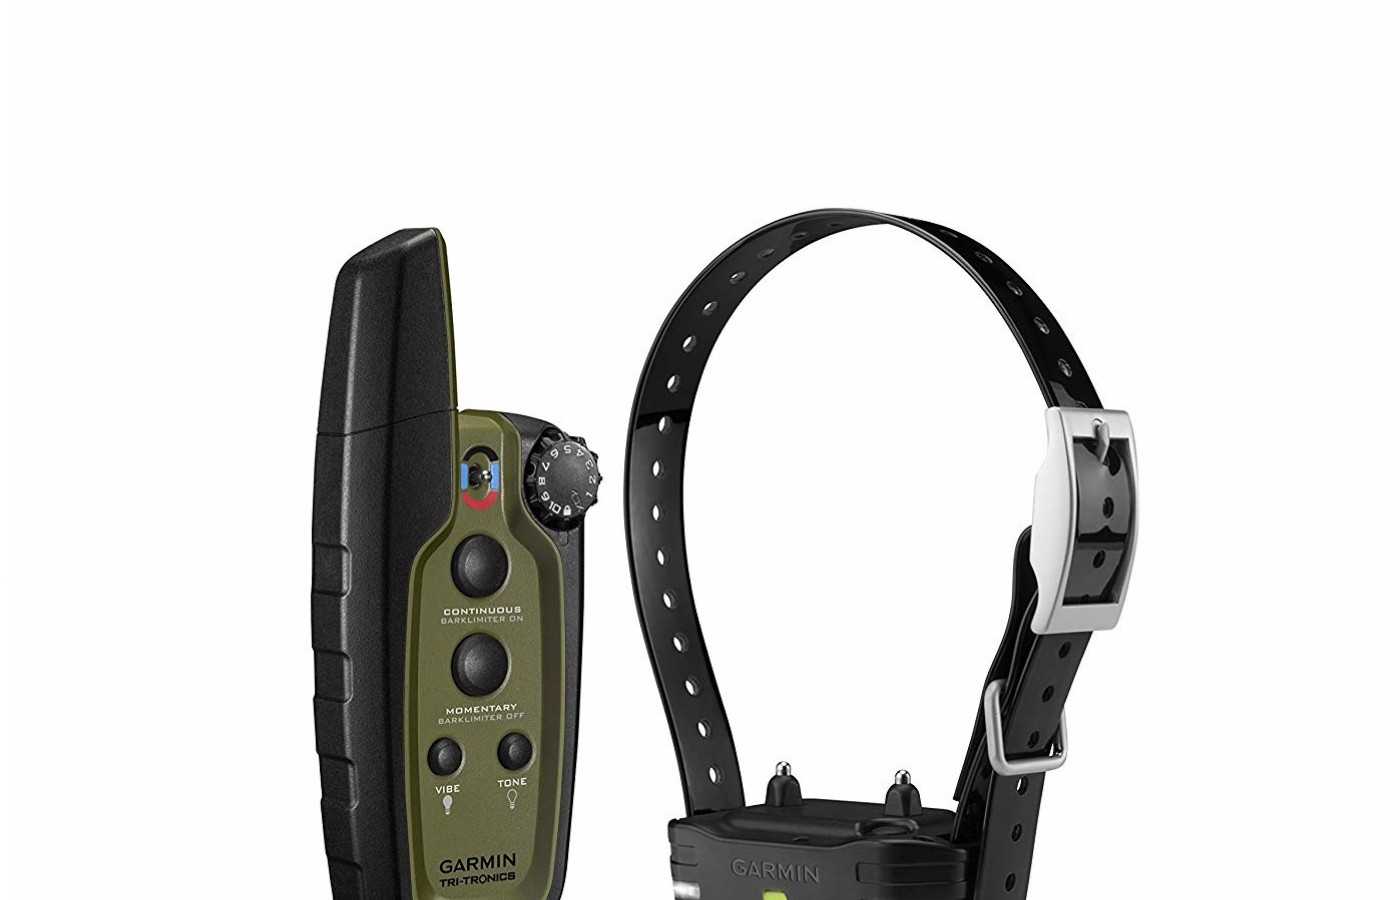 The Garmin Sport Pro offers effective and efficient dog training with only 1 hand.